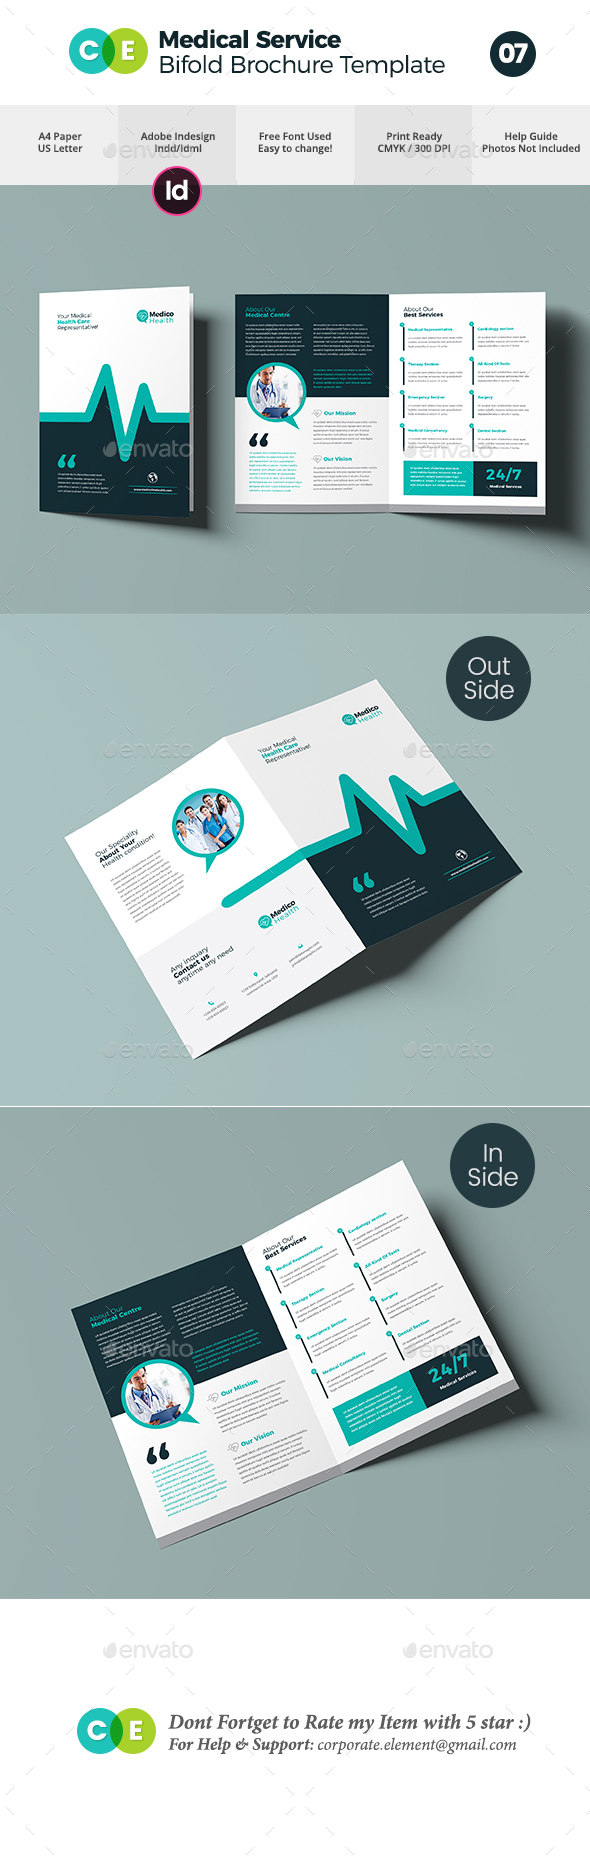 Medical Service Bifold Brochure Template V07 - Brochures Print Templates